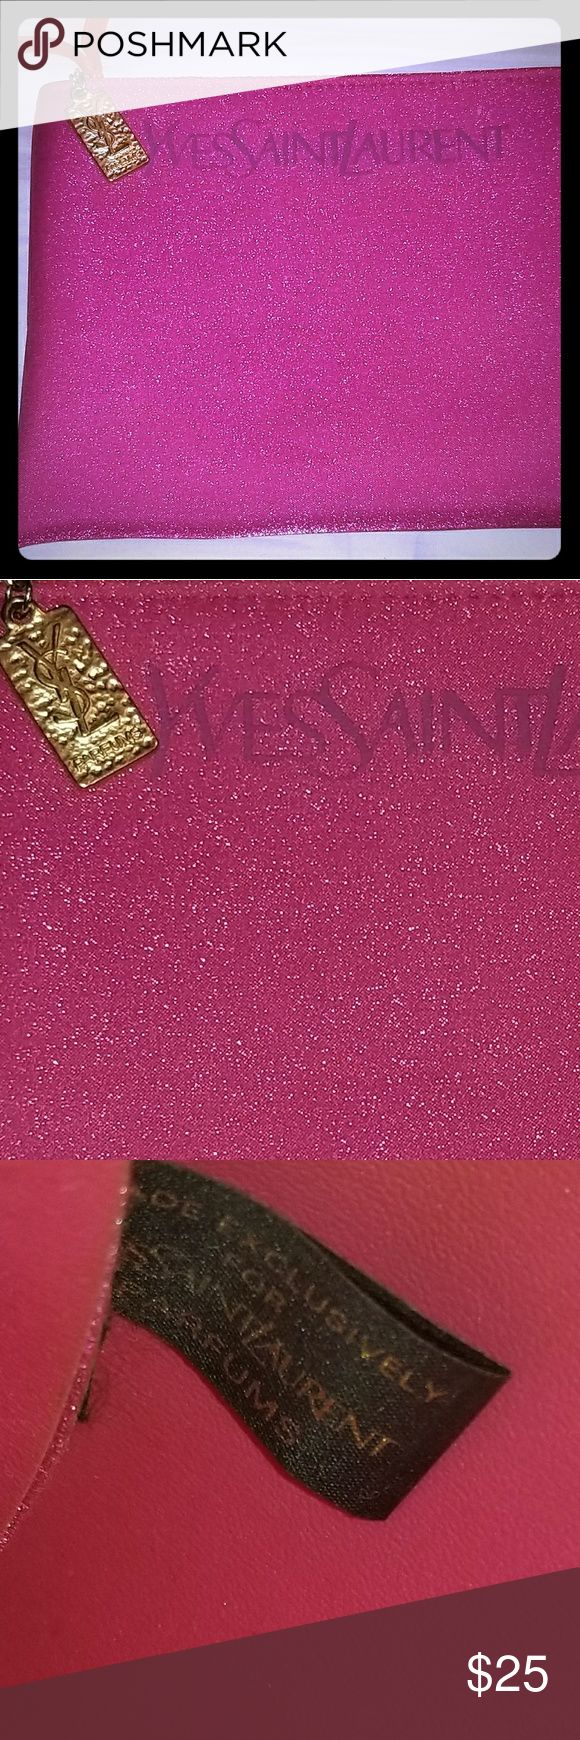 NEW-YVES SAINT LAURENT-PINK SPARKLY BAG W/CHARM!💟 NEW-YVES SAINT LAURENT PERFUMES-PINK SPARKLY BAG W/CHARM!💟 BRAND NEW. NEVER USED. NO STAINS, TEARS OR ODORS! SMOKE/PET FREE HOME! BUNDLE & SAVE! Yves Saint Laurent Bags Cosmetic Bags & Cases